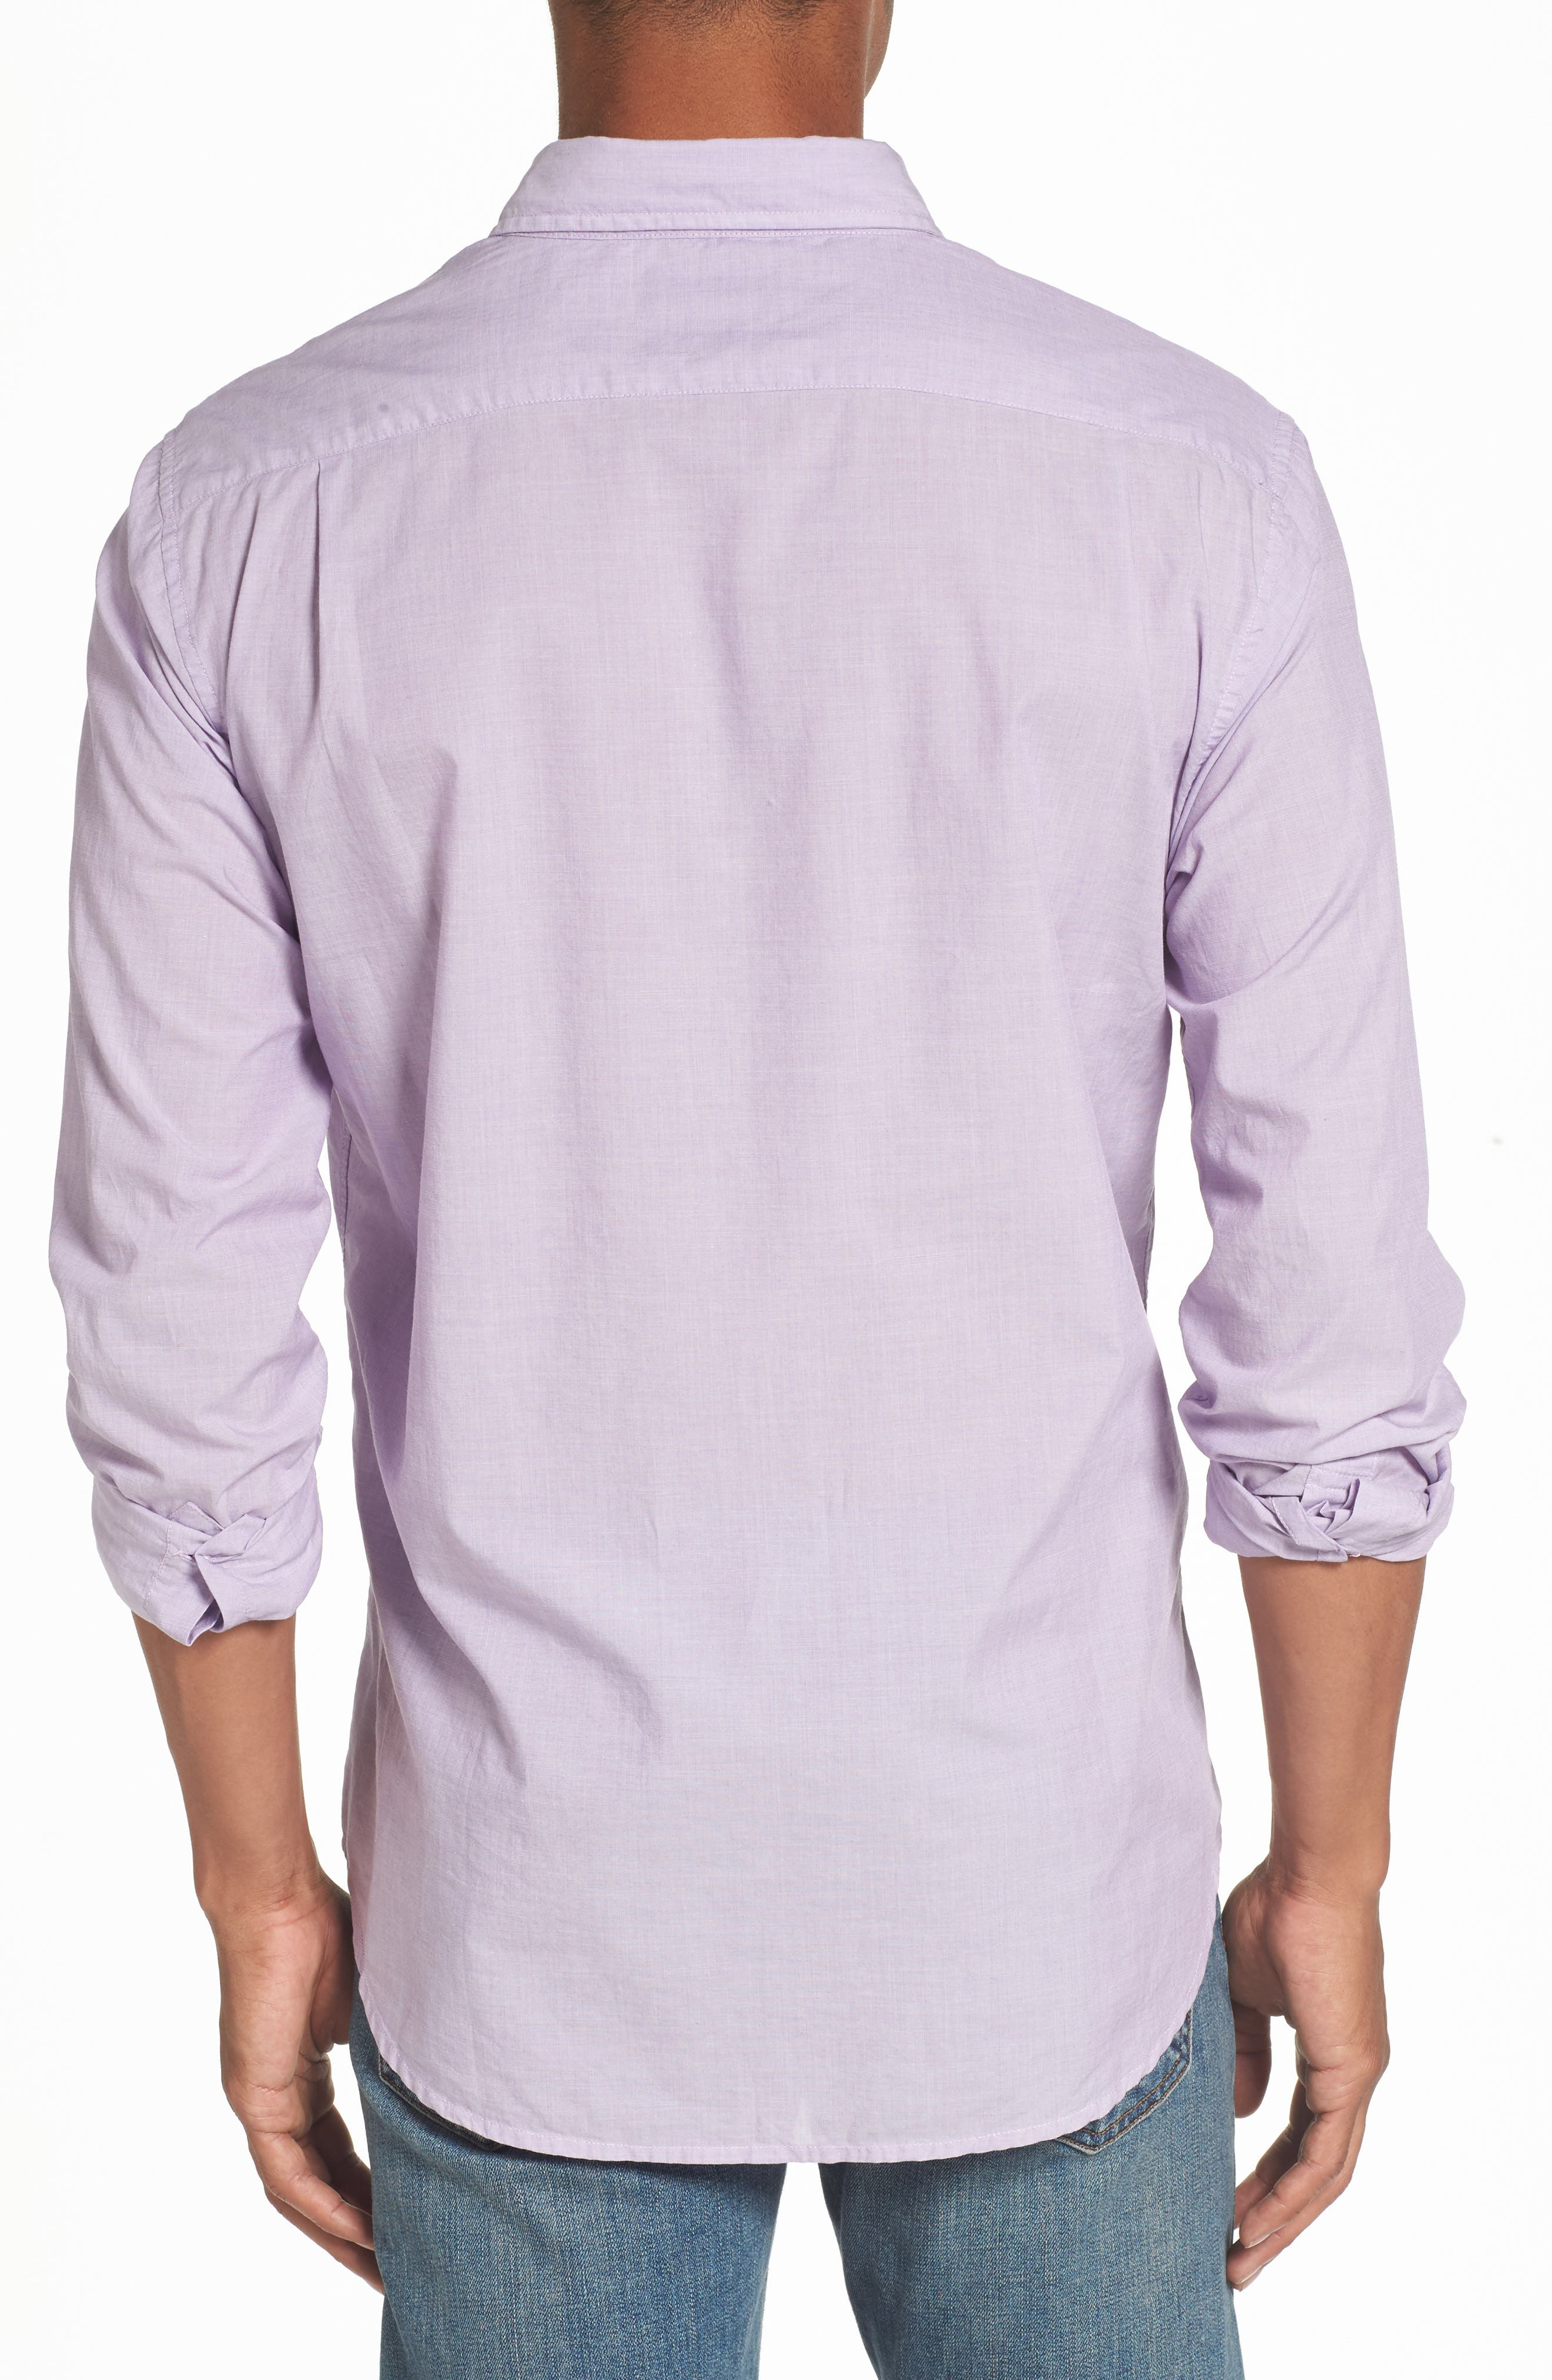 Alternate Image 2  - Bonobos Slim Fit Summerweight Sport Shirt